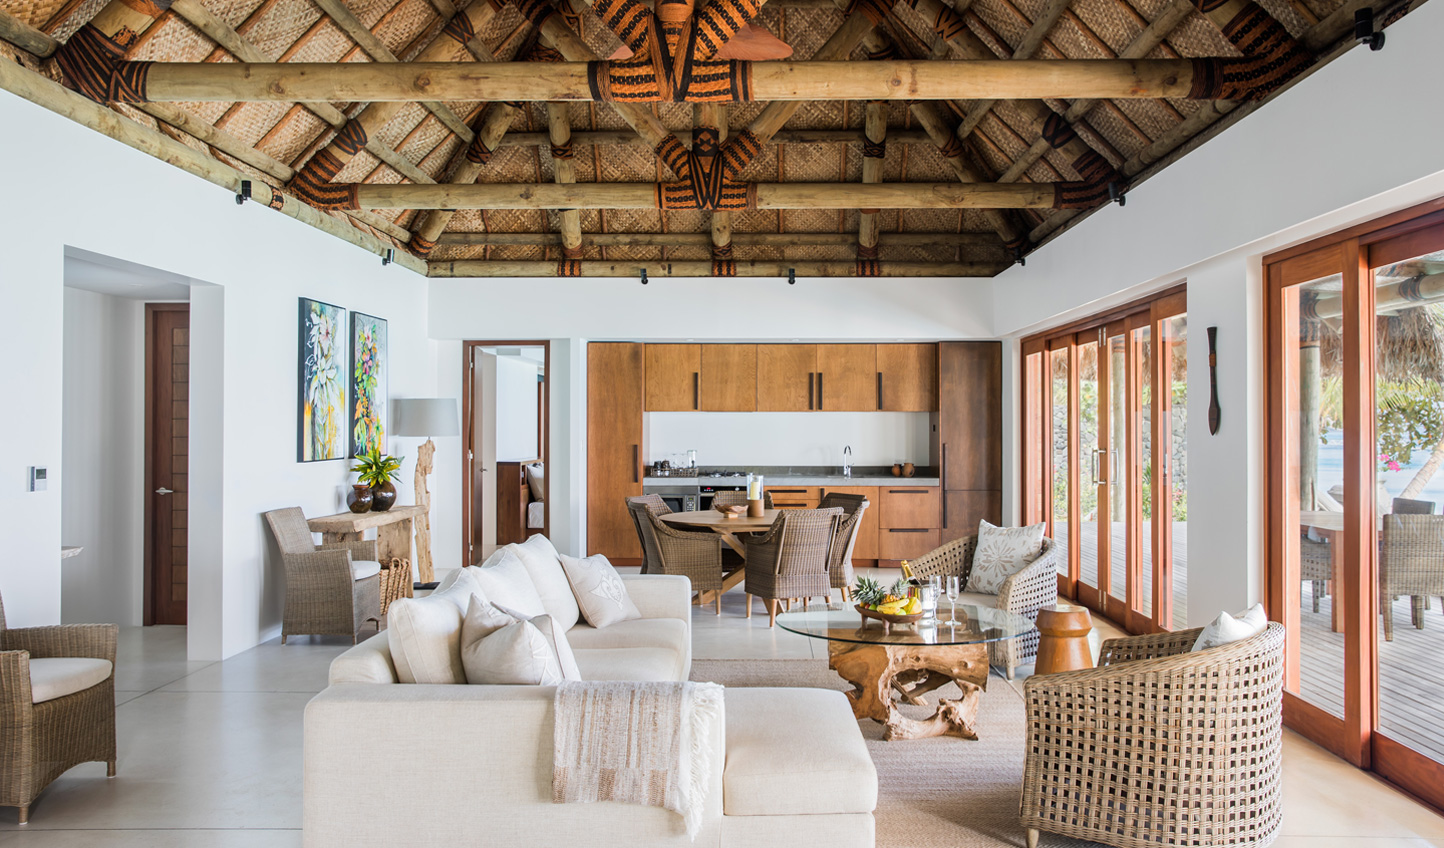 The luxury residences are the largest in all of Fiji